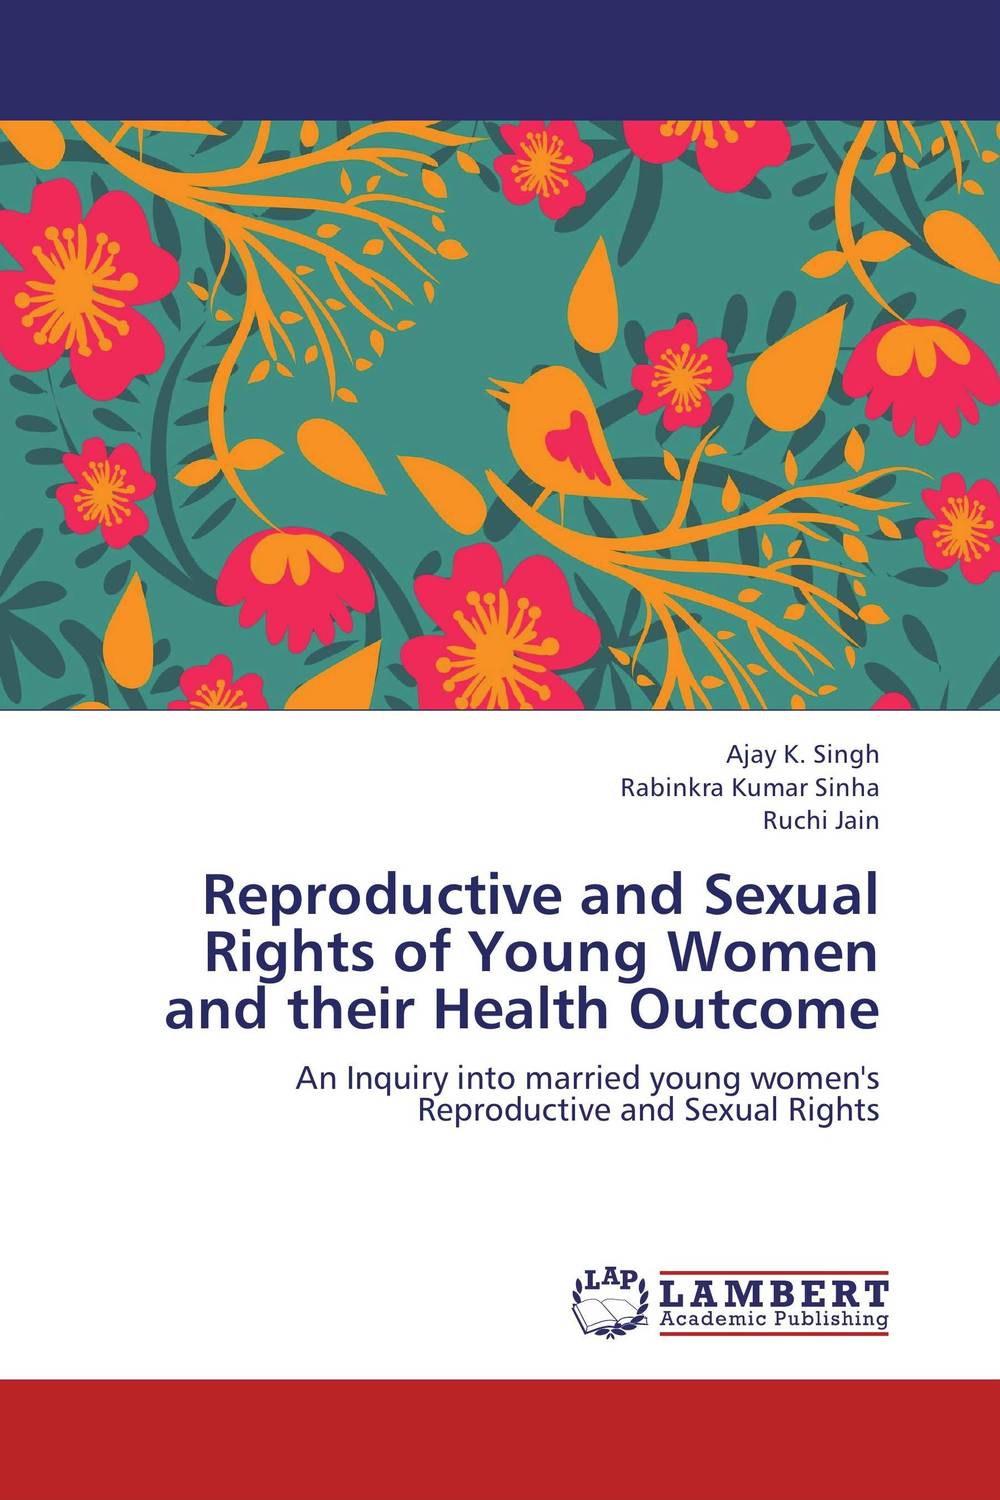 Reproductive and Sexual Rights of Young Women and their Health Outcome samhaa samir ibrahim mohammed and sherif mohamed attia houria family relations and reproductive health through early marriage